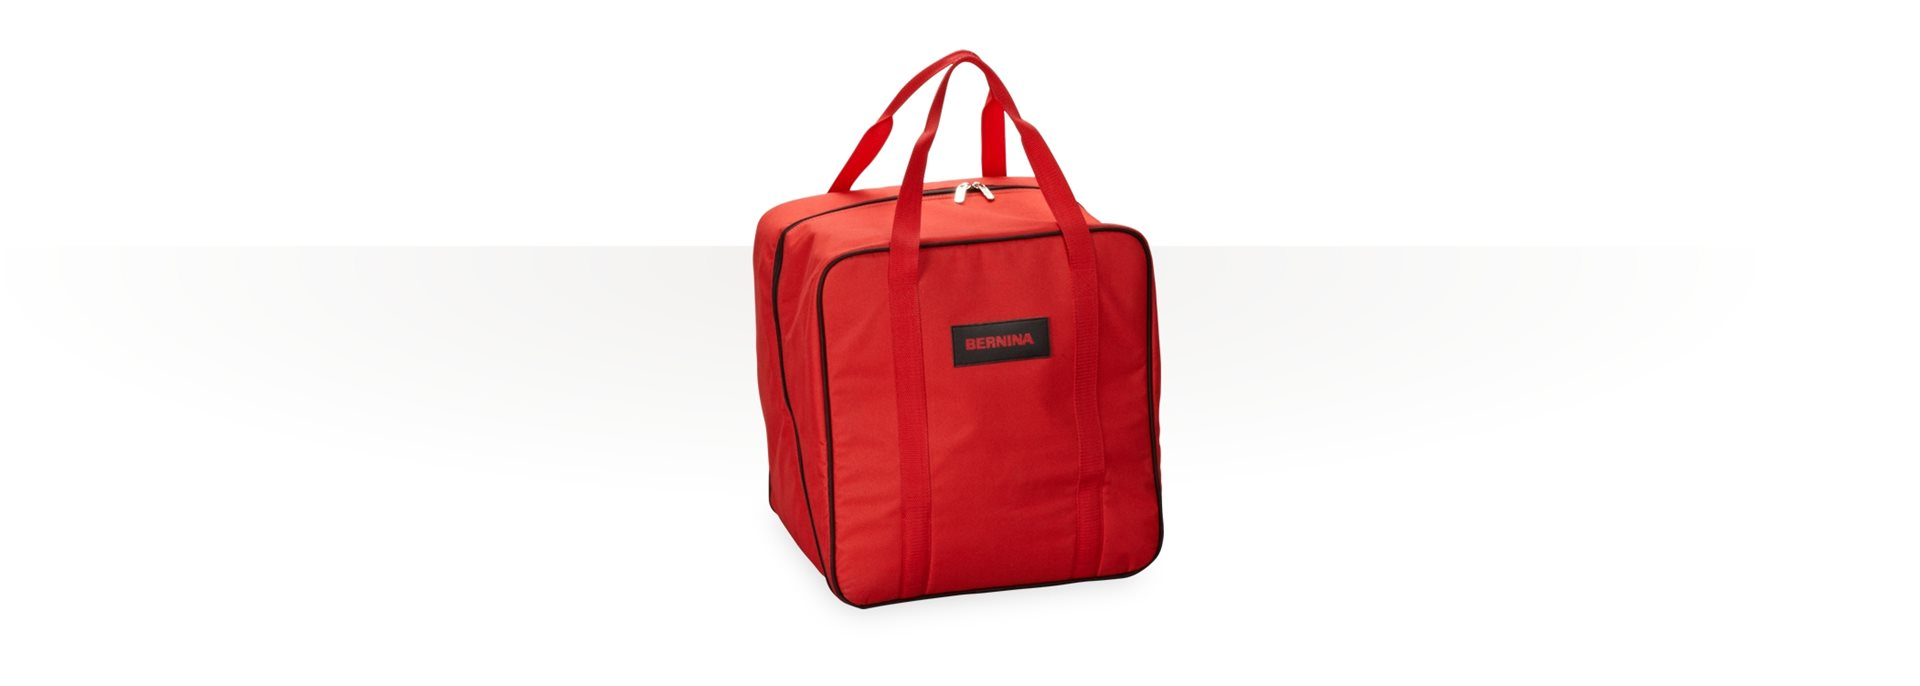 Picture: Overlocker carry bag